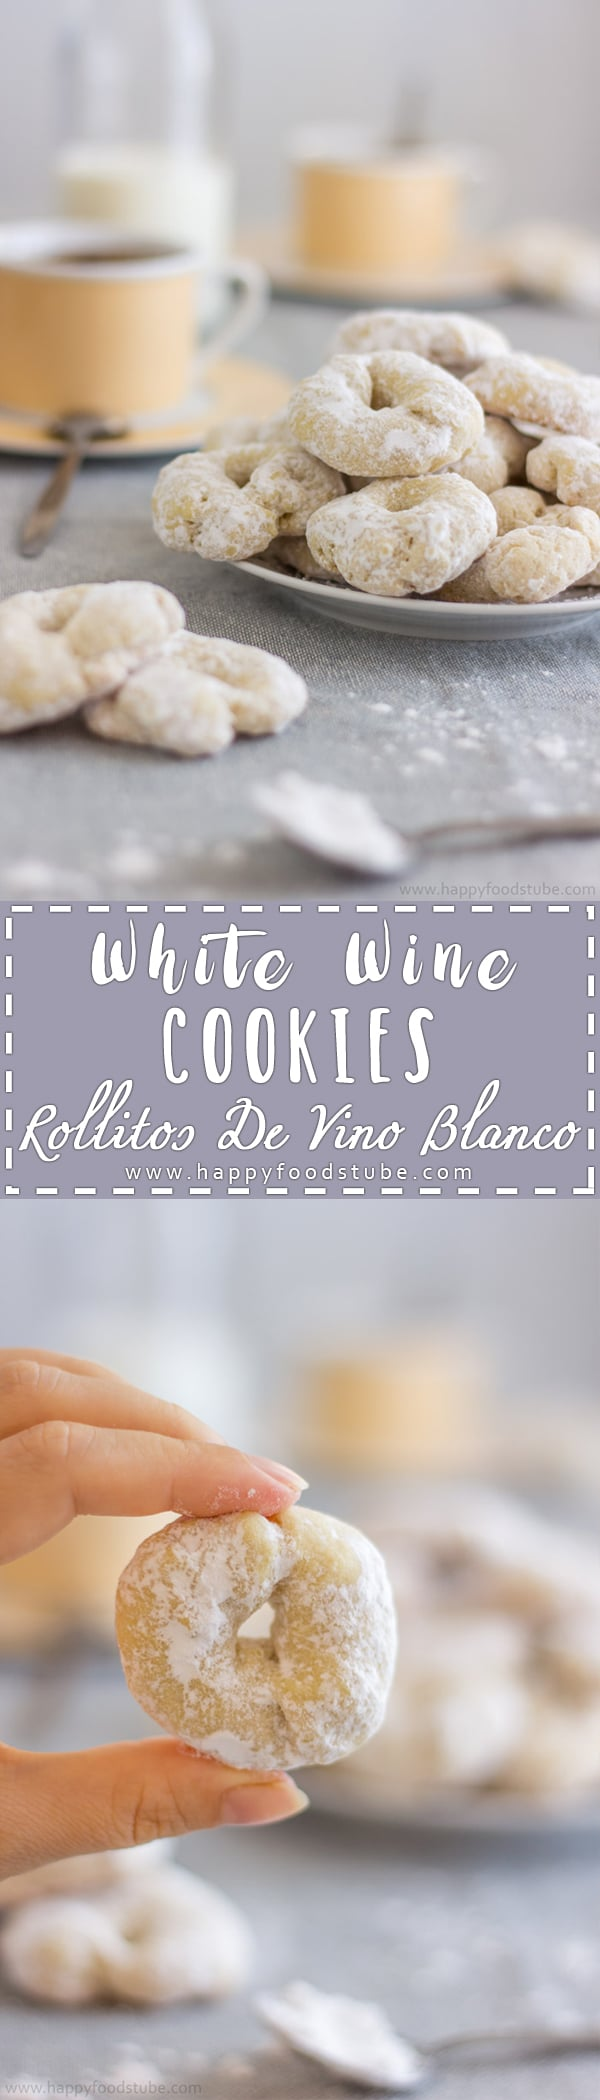 White wine cookies - rollitos de vino blanco are delicious sweet treats! If you haven't tried them yet, here is your chance! They are easy to make & fast to bake! | happyfoodstube.com